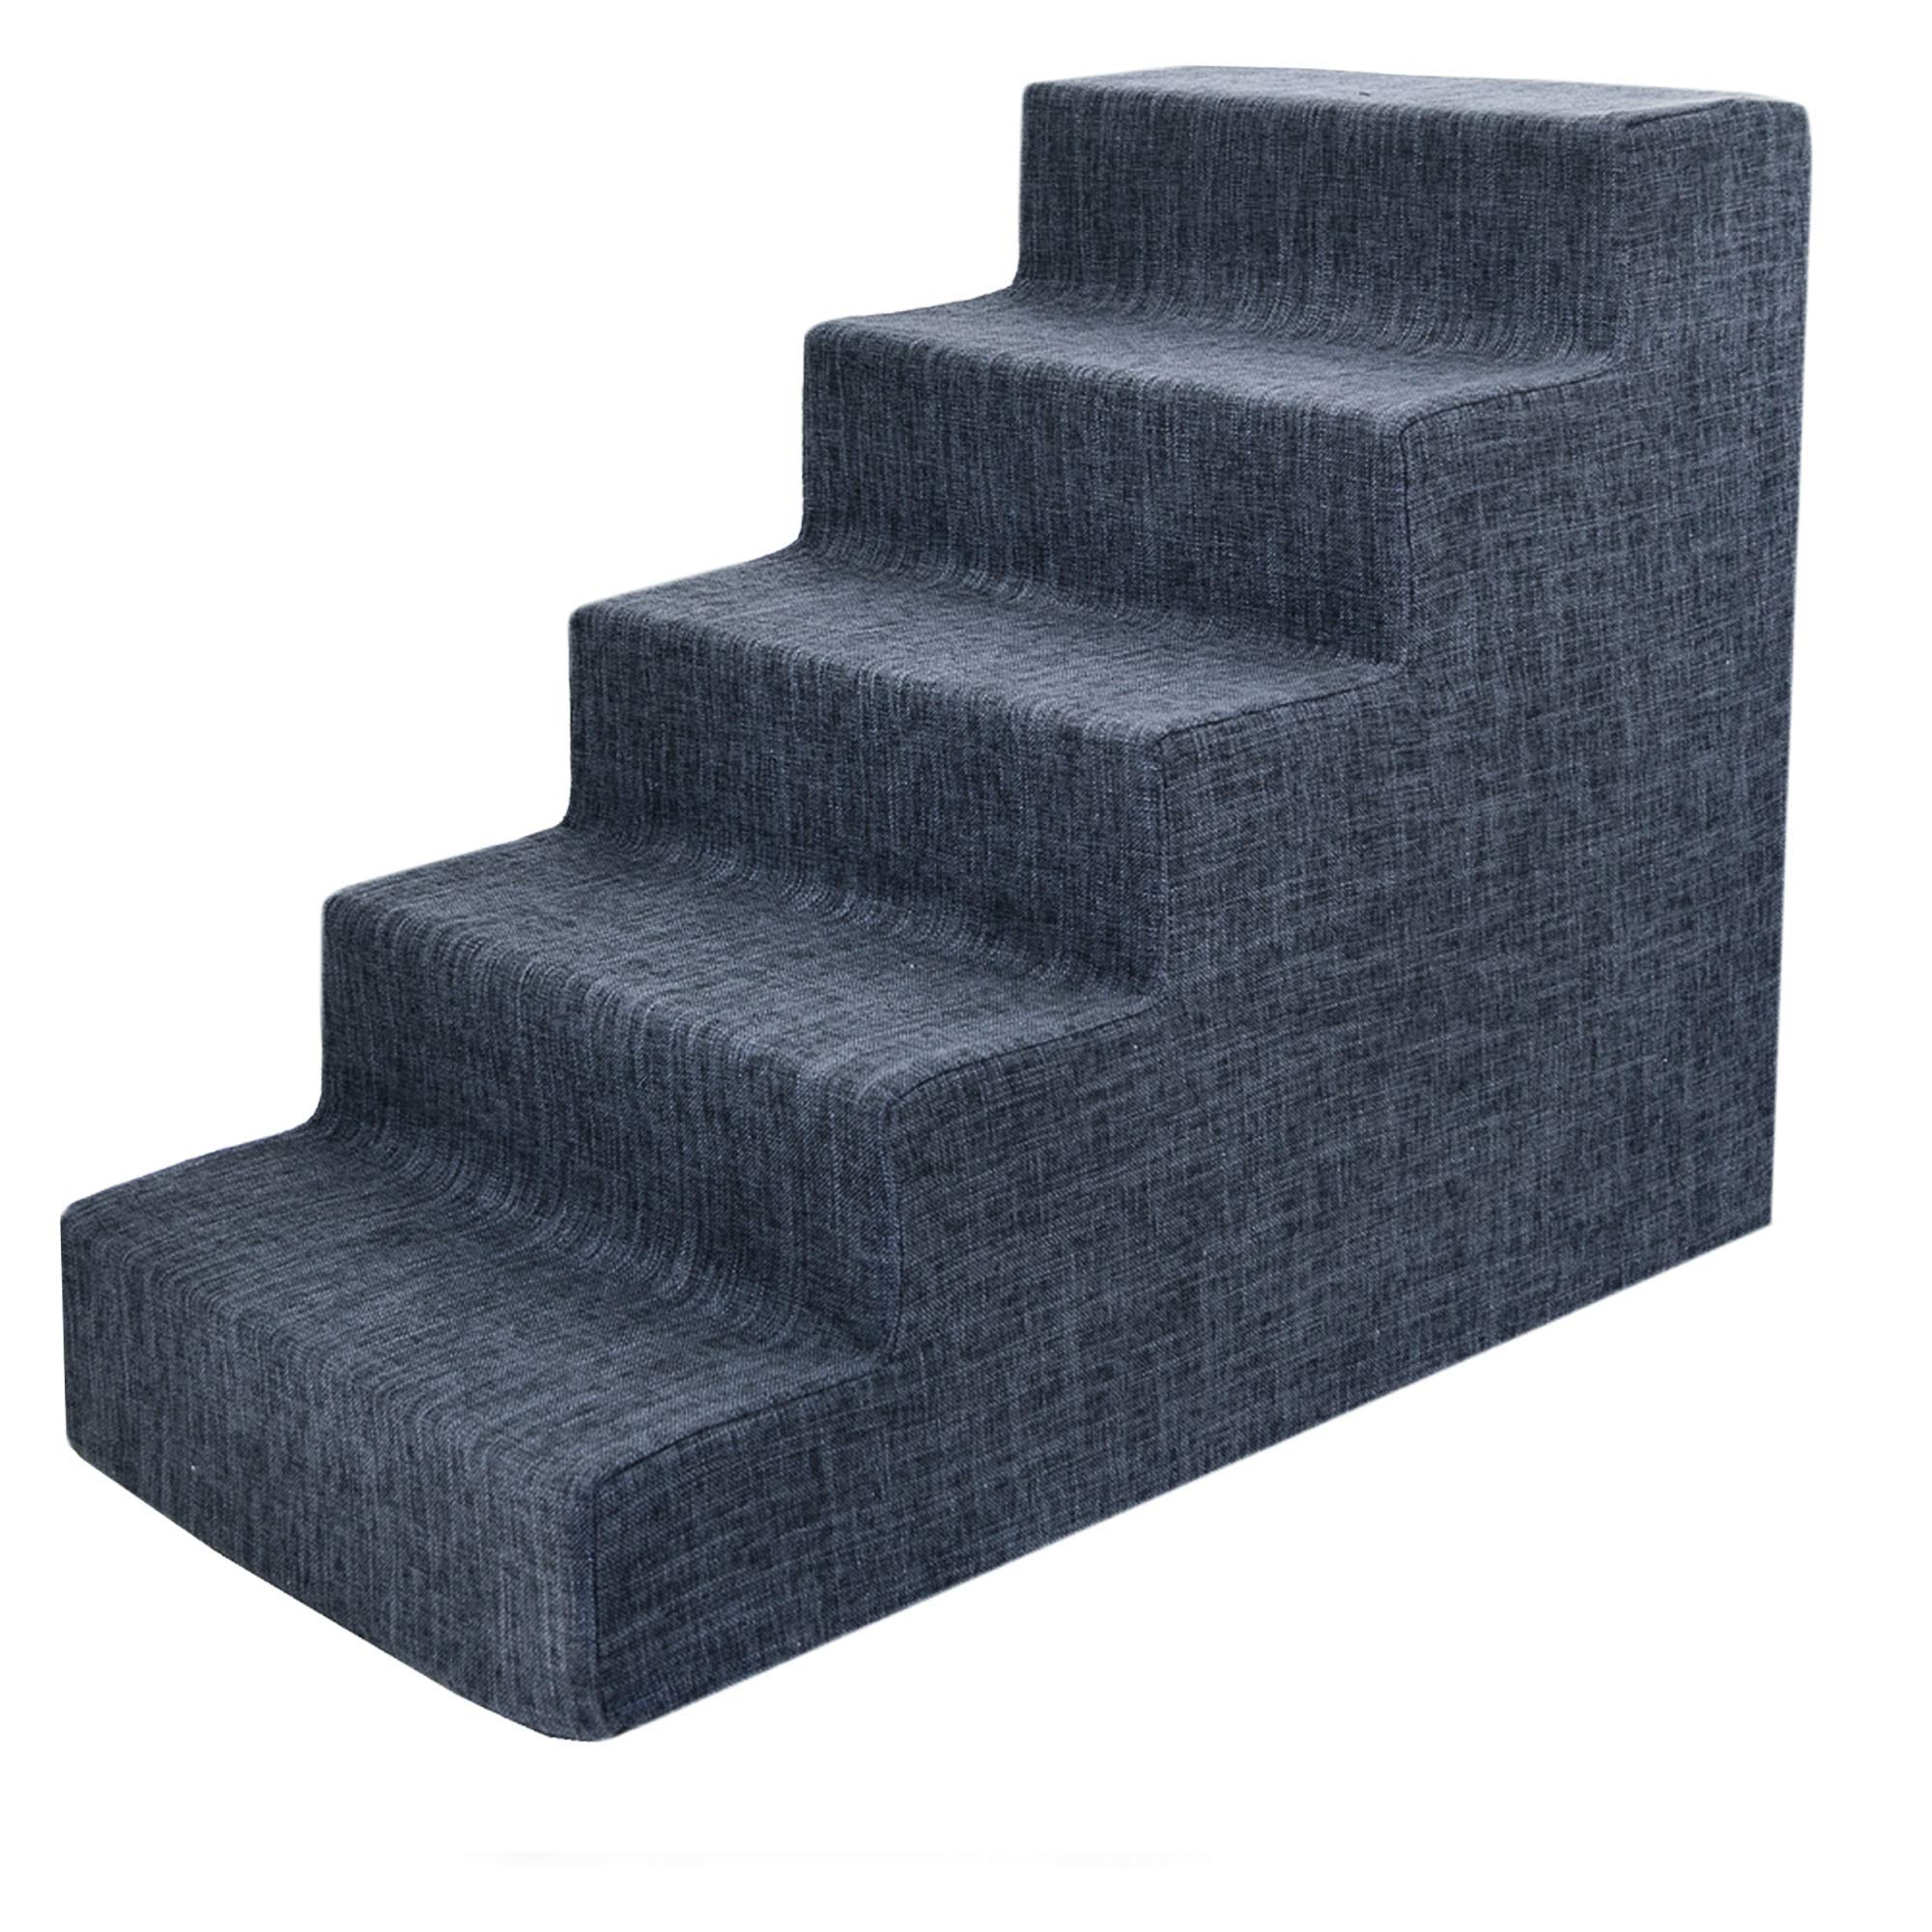 USA Made Pet Steps/Stairs with CertiPUR-US Certified Foam for Dogs & Cats by Best Pet Supplies - Dark Gray Linen, 5-Step (H: 22.5'') by Best Pet Supplies, Inc.